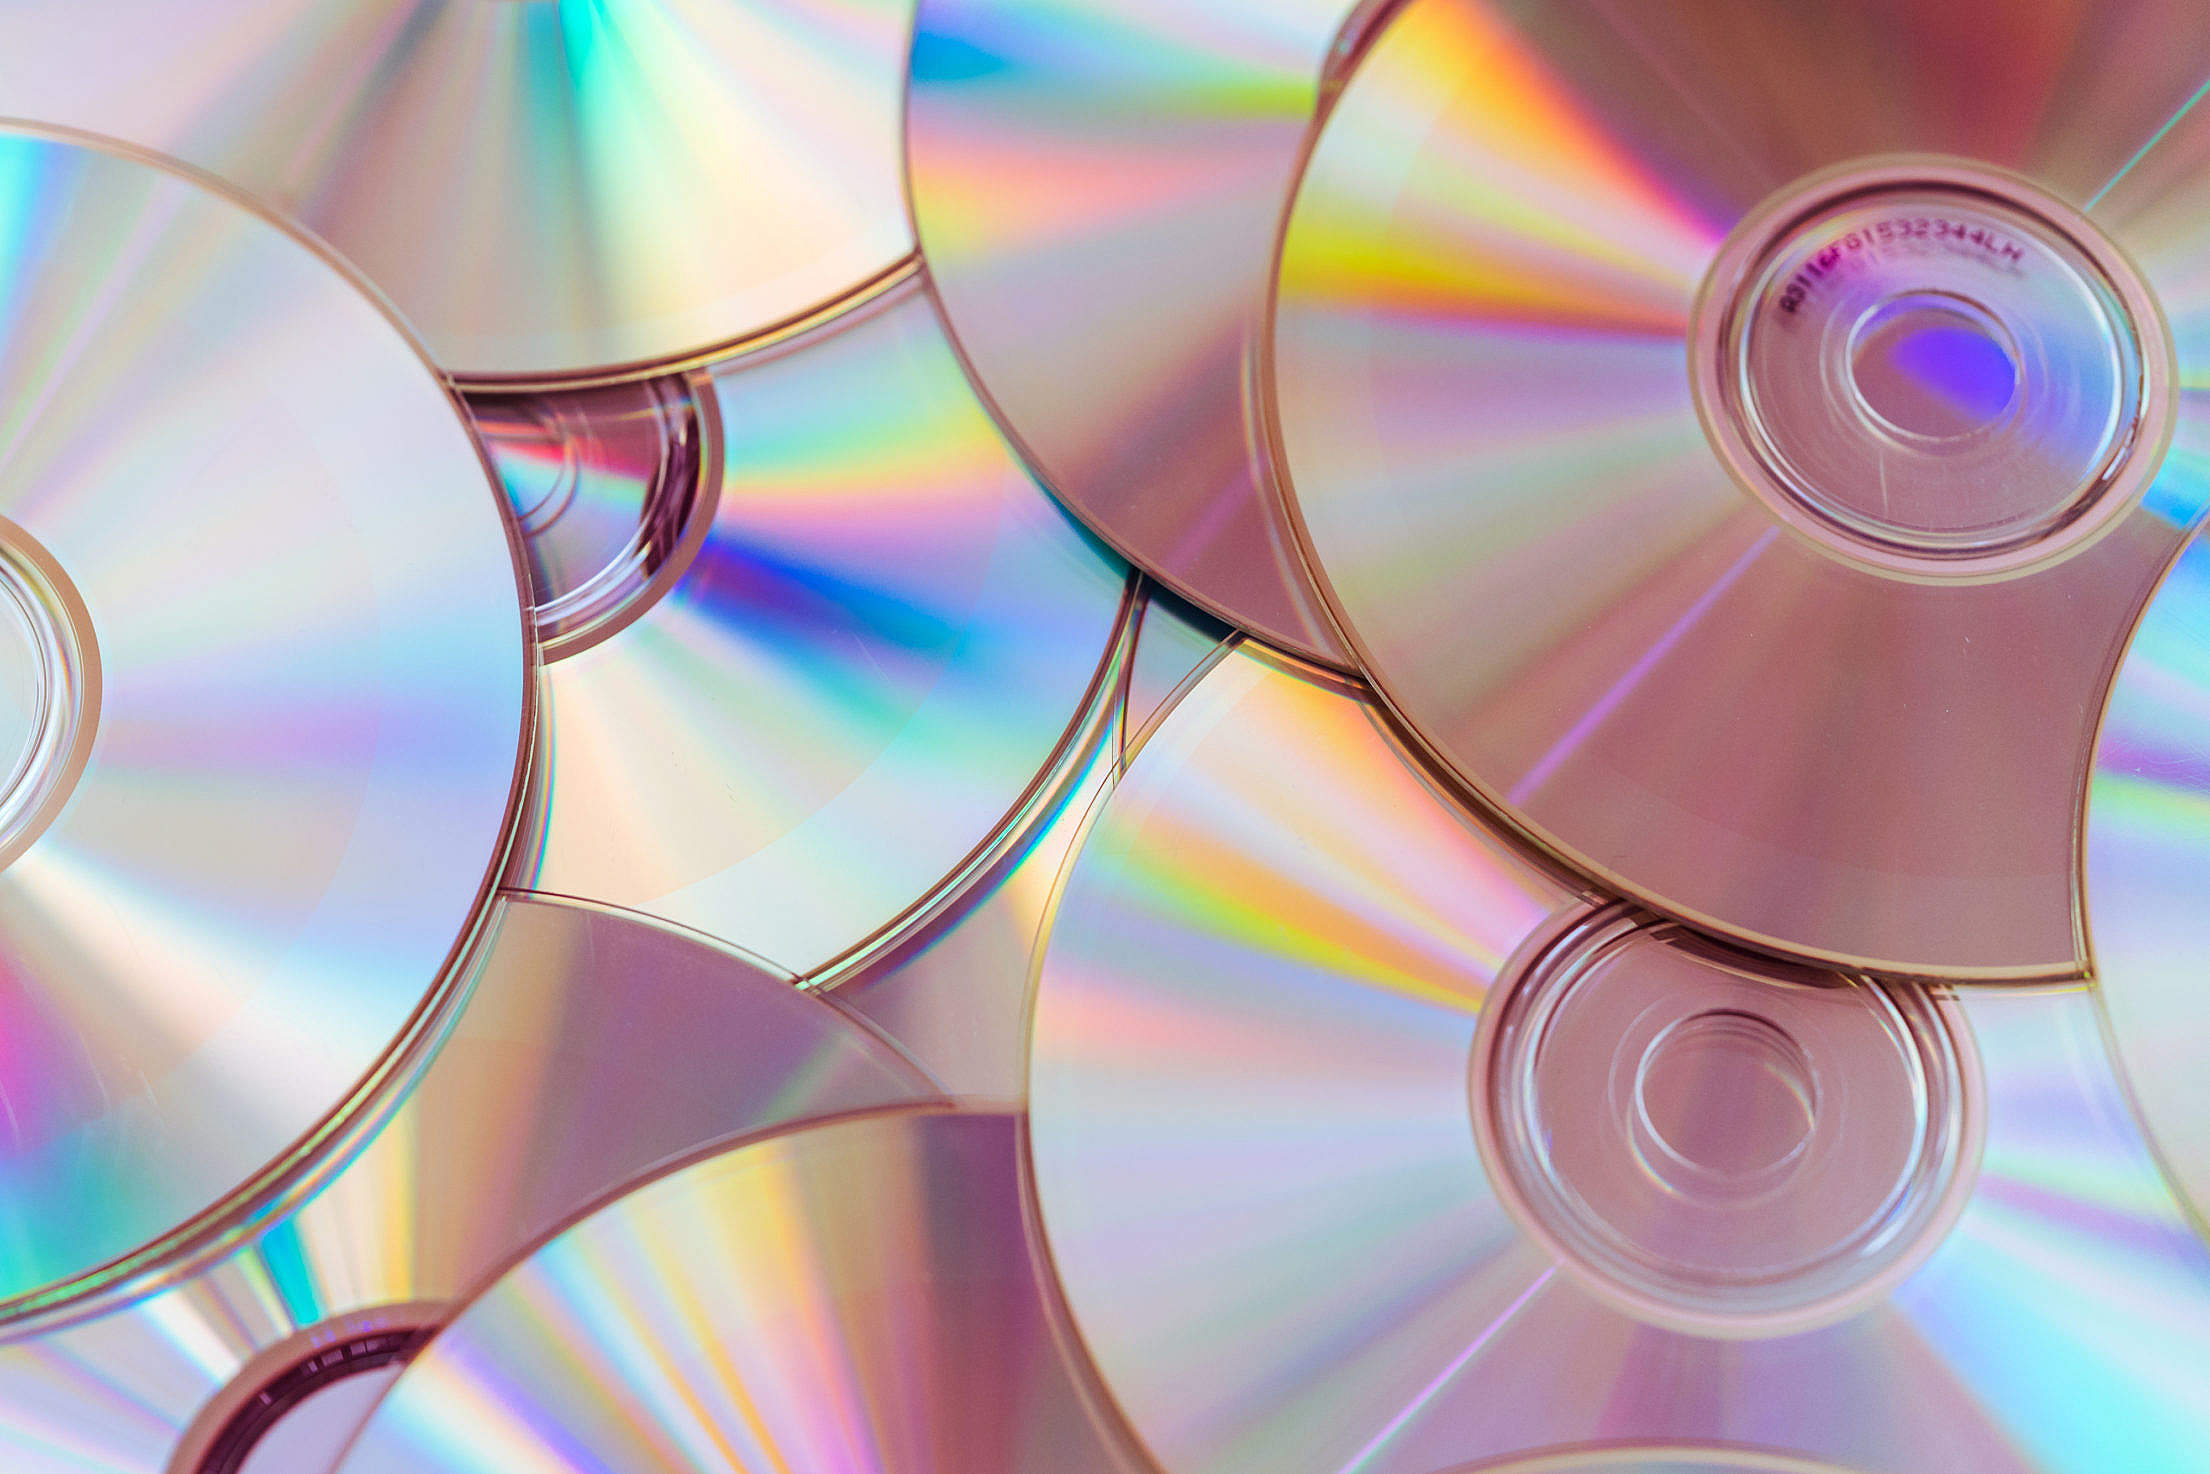 Pile of CDs Compact Discs and DVDs Free Stock Photo